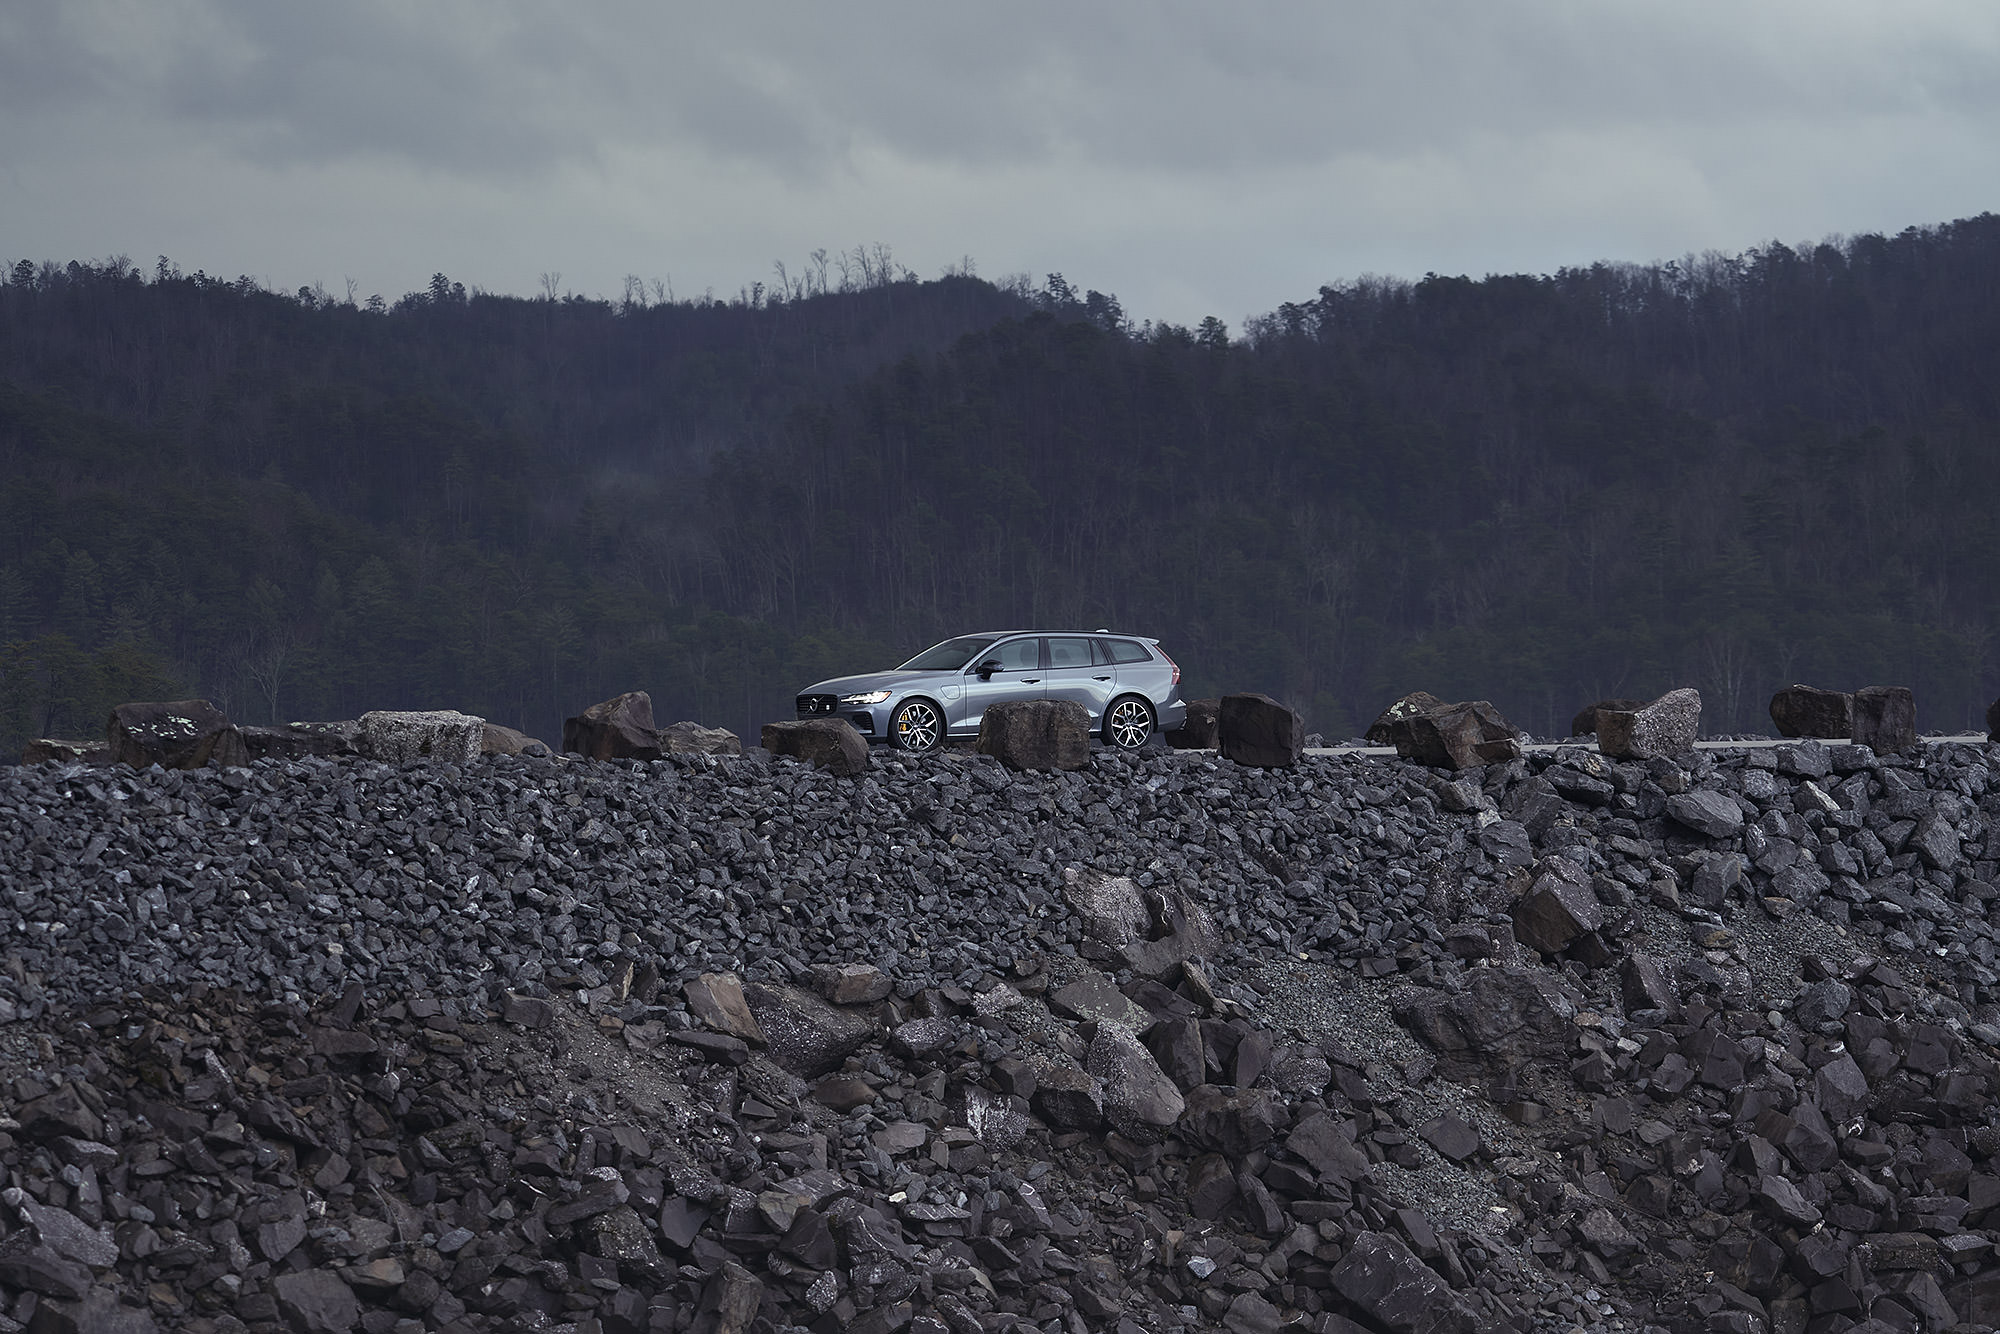 Volvo V60 T8 Polestar surrounded by rocks in the morning fog